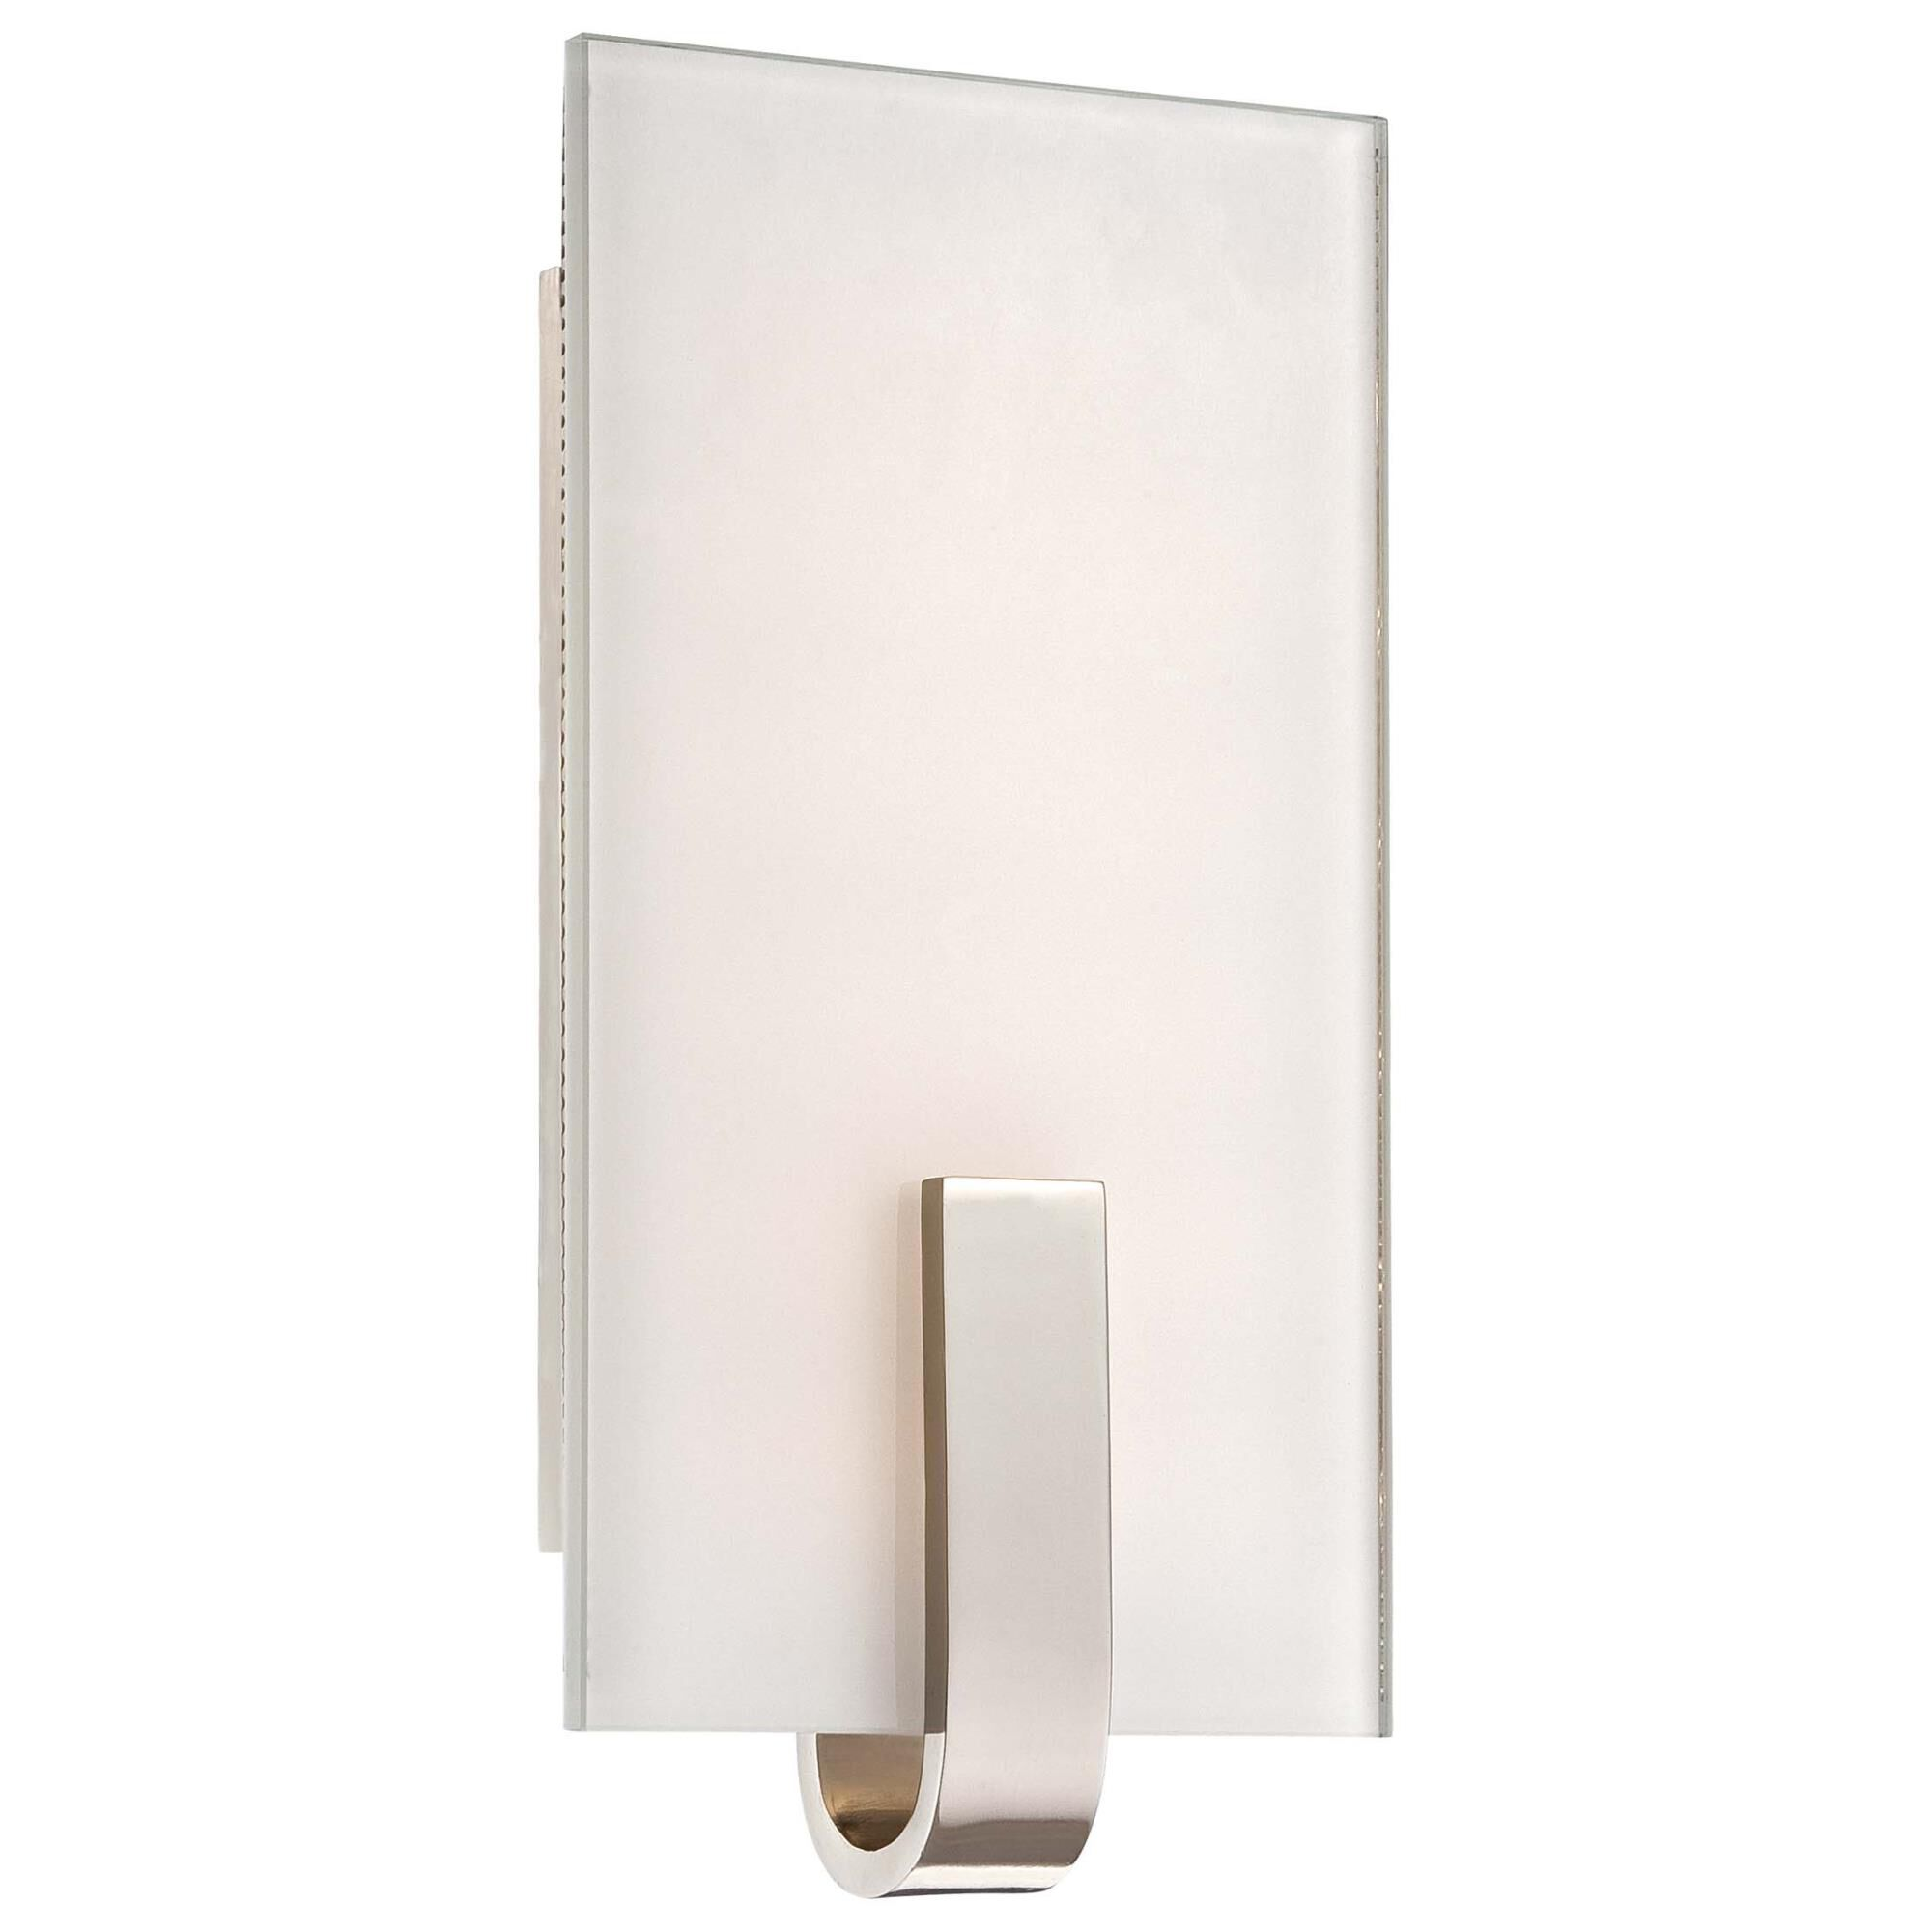 Kovacs 12 Inch Led Wall Sconce - P1140-613-l - Modern Contemporary